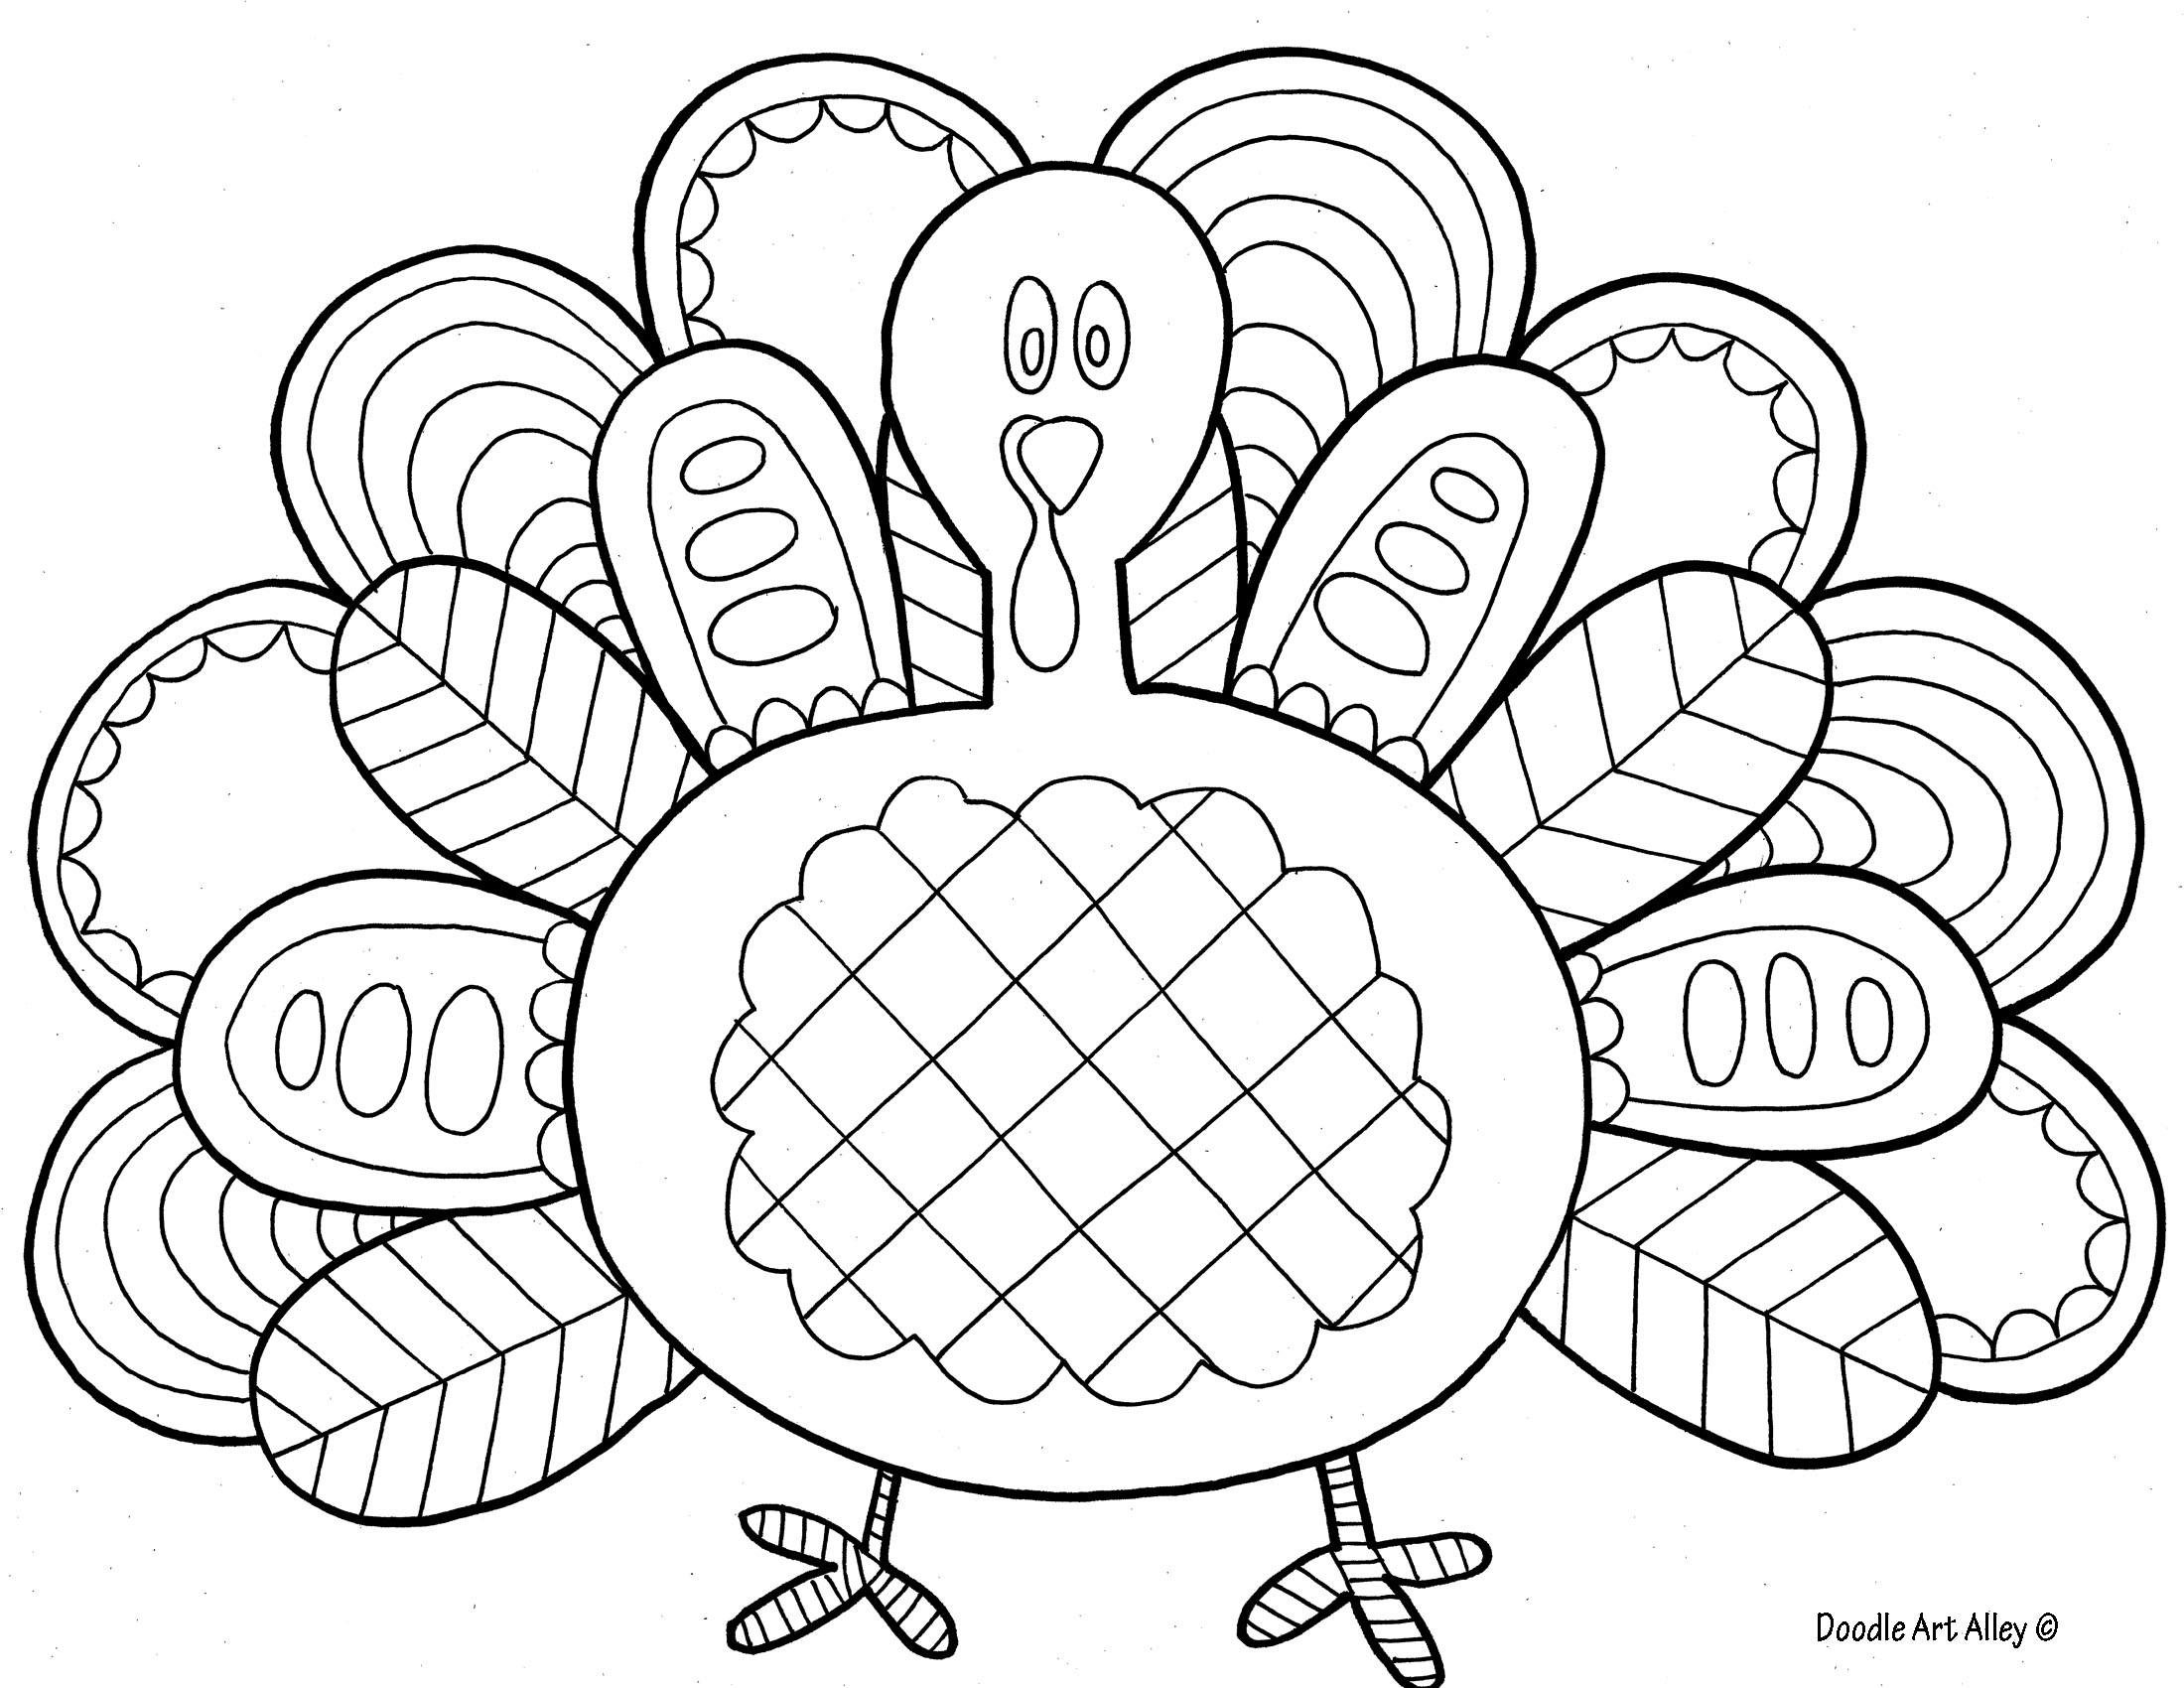 Turkey_Coloring_Pages_07